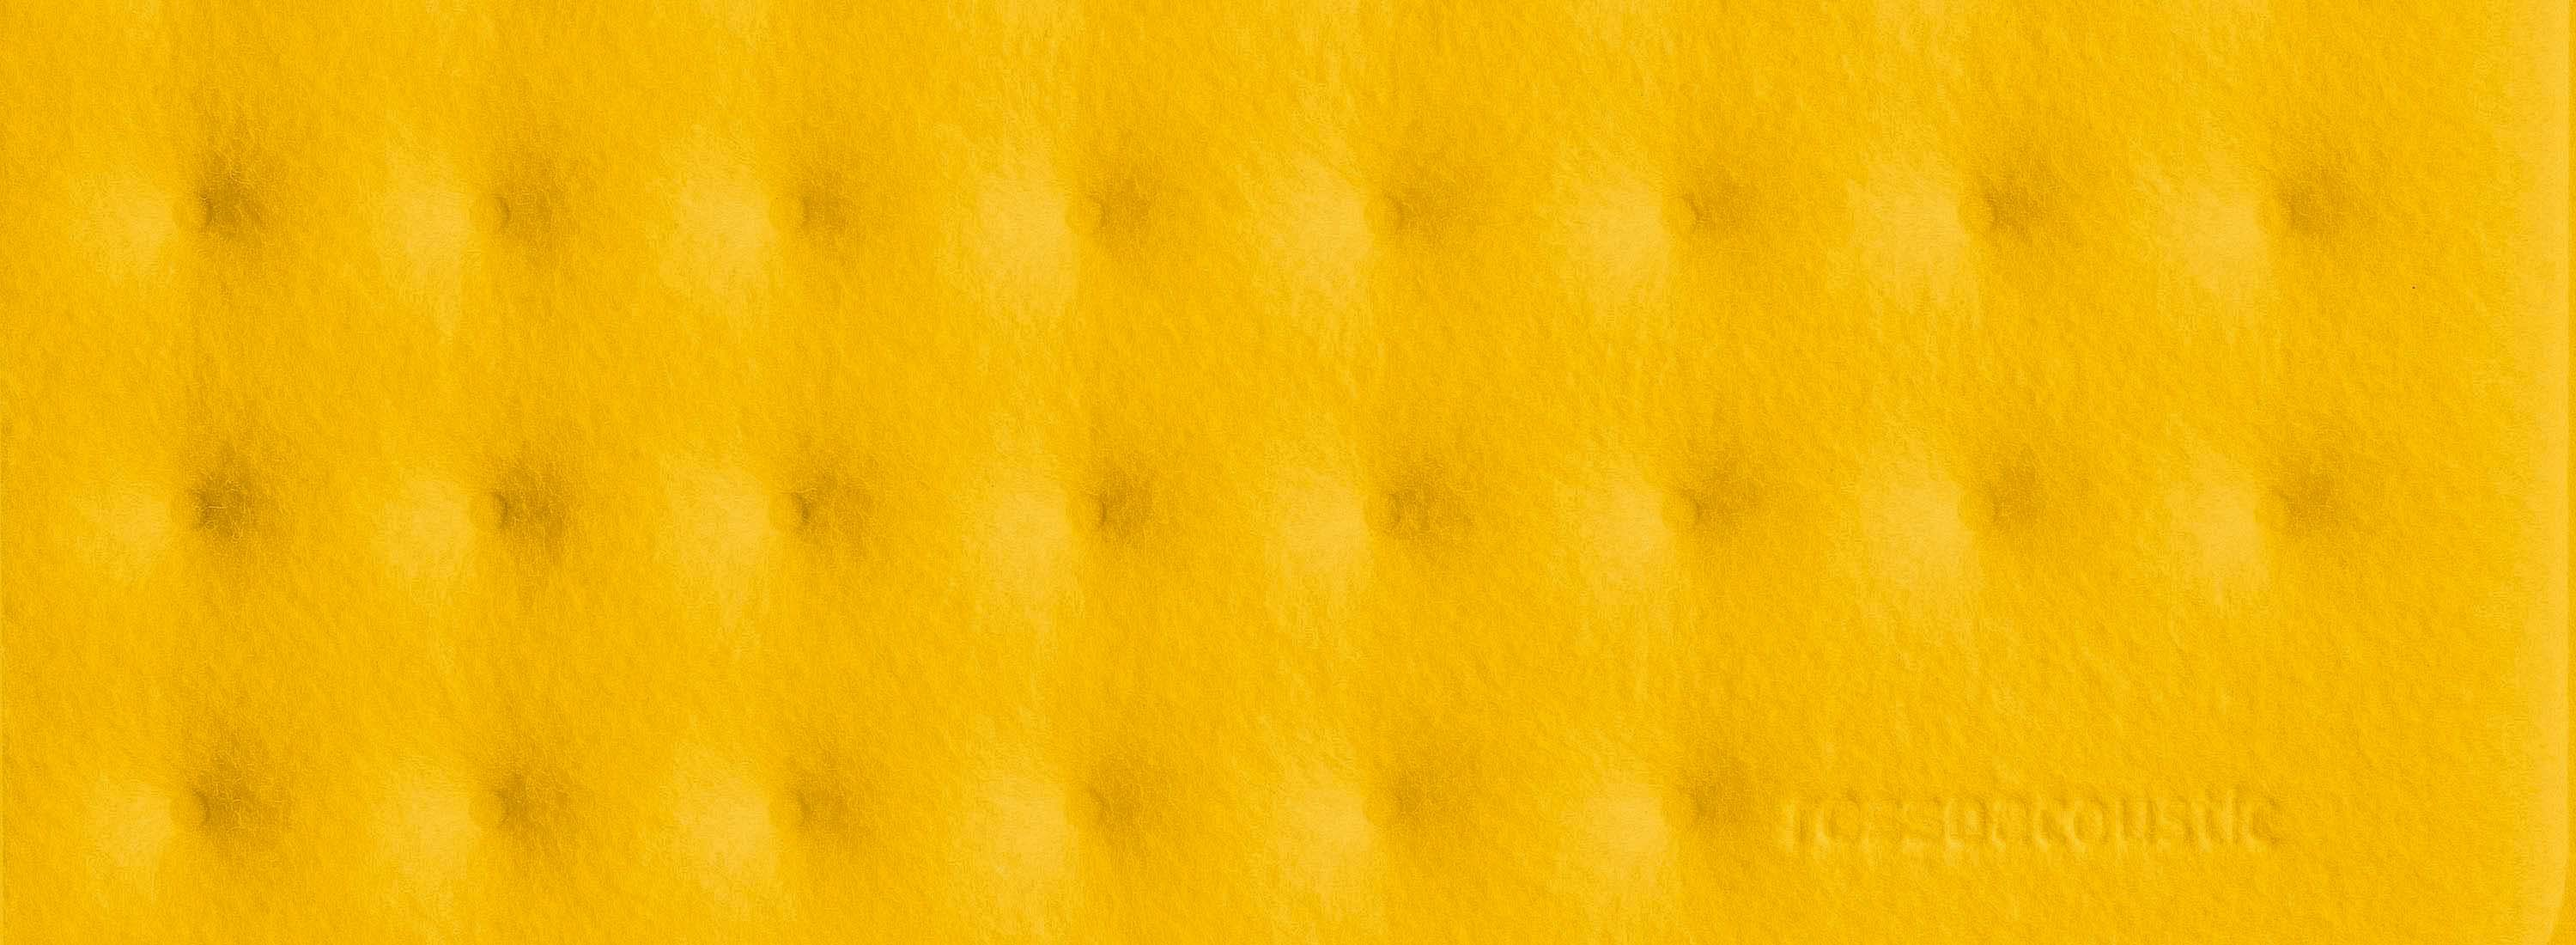 Rossoacoustic PAD Q 600 Plus, 600 x 600 x 60 mm, yellow field